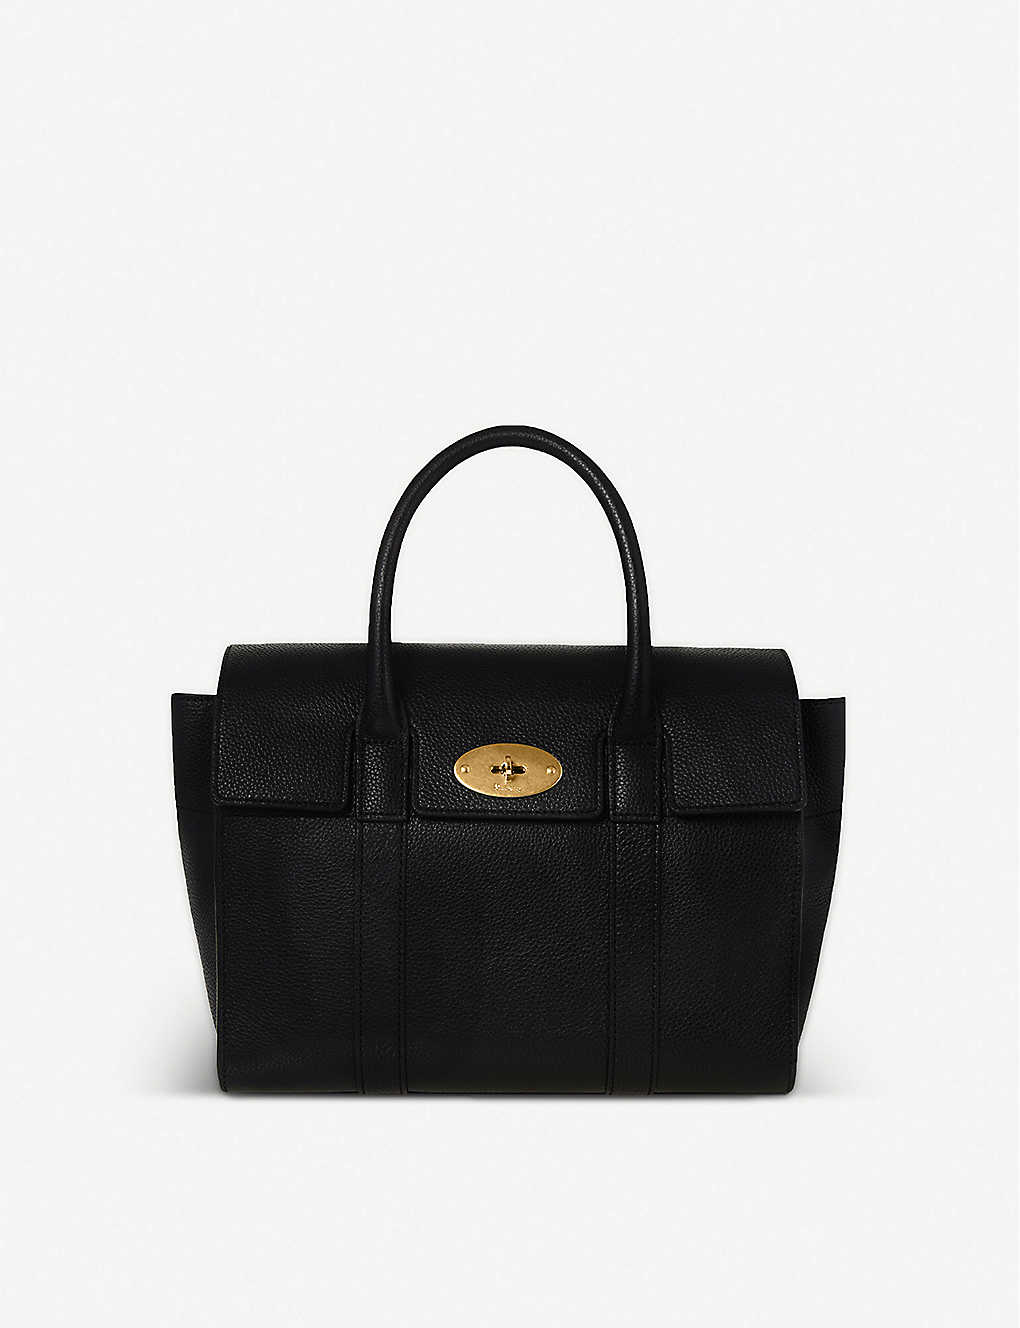 MULBERRY - Bayswater small grained leather tote  fc6f25a33a3b7